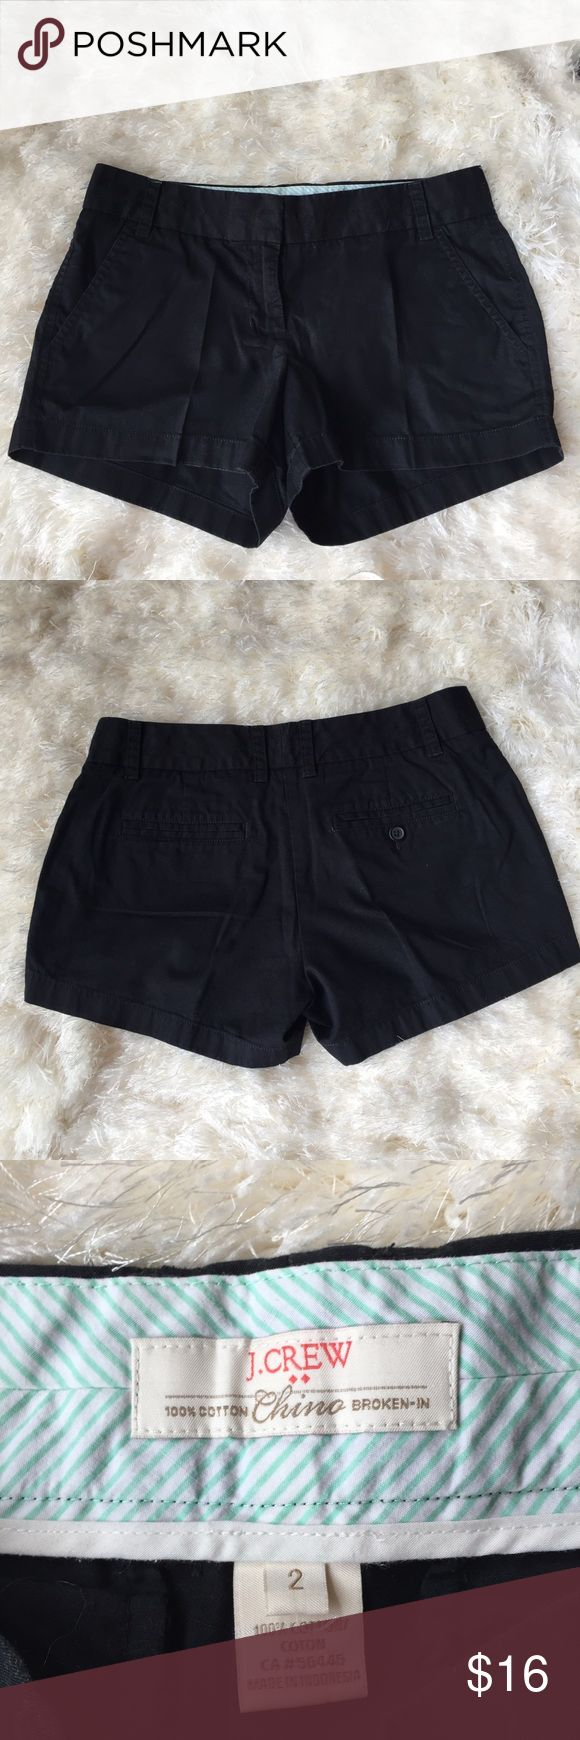 "J.Crew black chino shorts size 2. Adorable black chino shorts. Size 2. Waist measures 30"",inseam is 3"".like new! J. Crew Shorts"